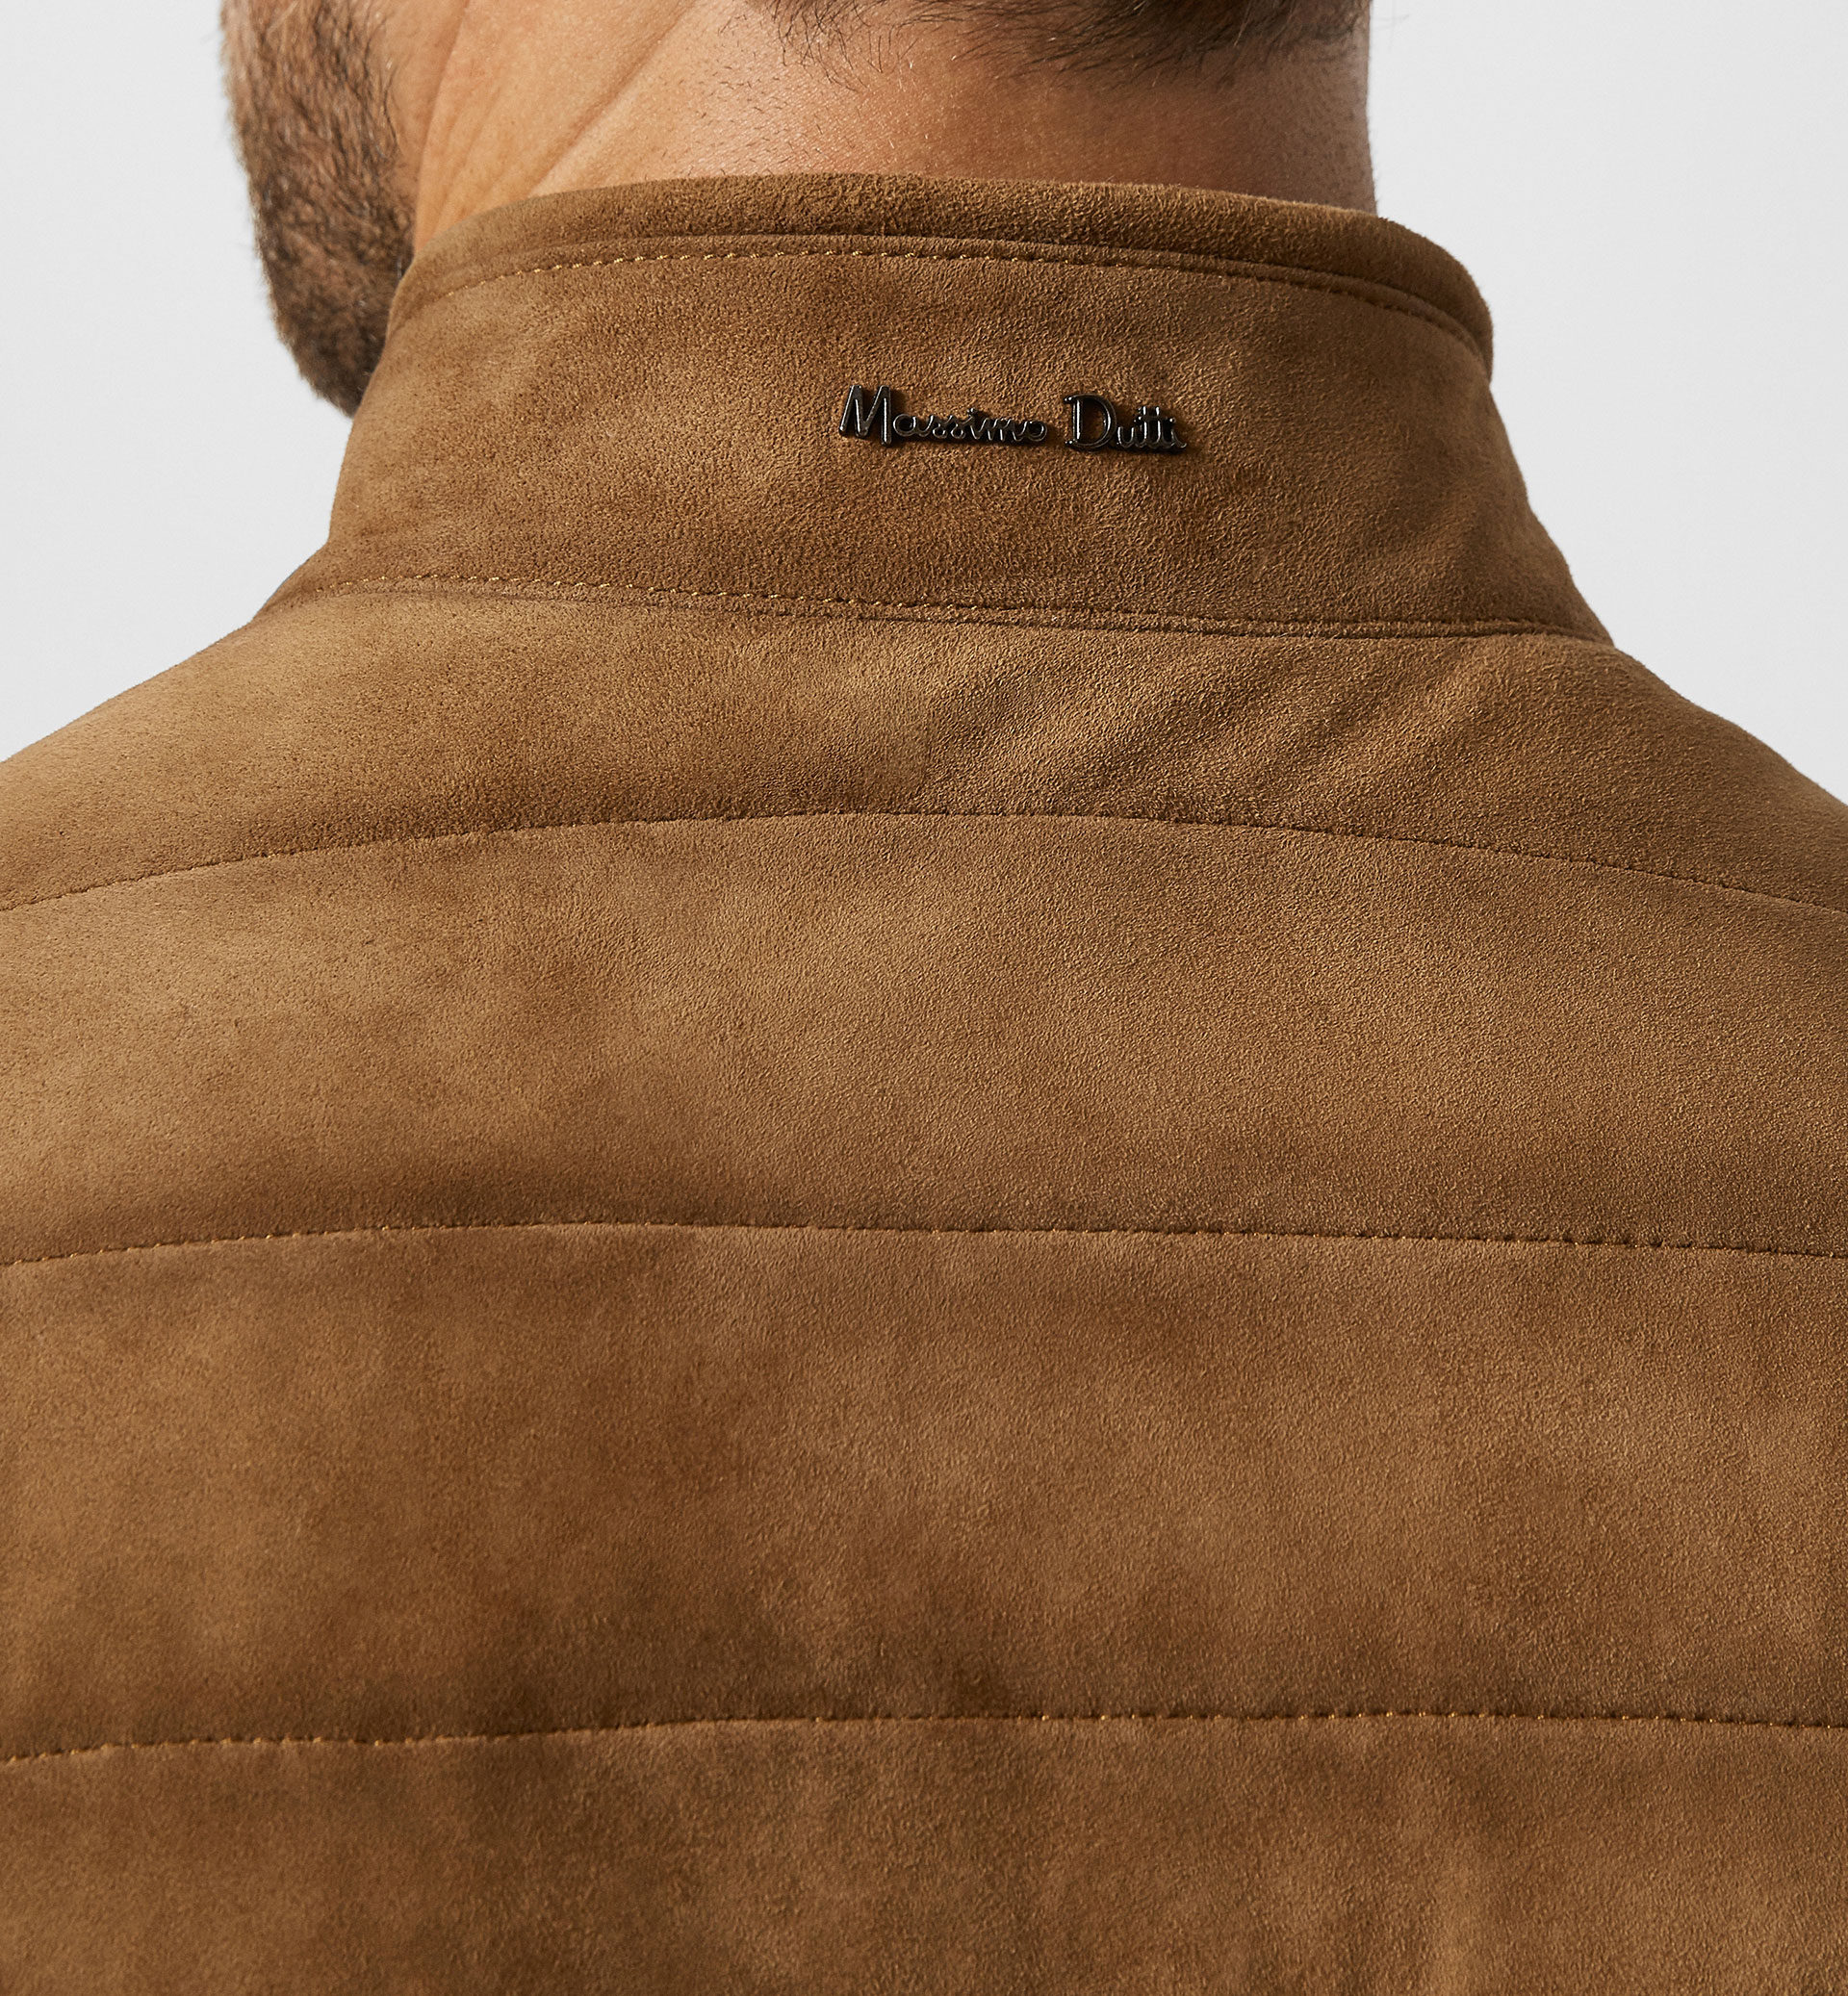 LIMITED EDITION QUILTED SUEDE JACKET